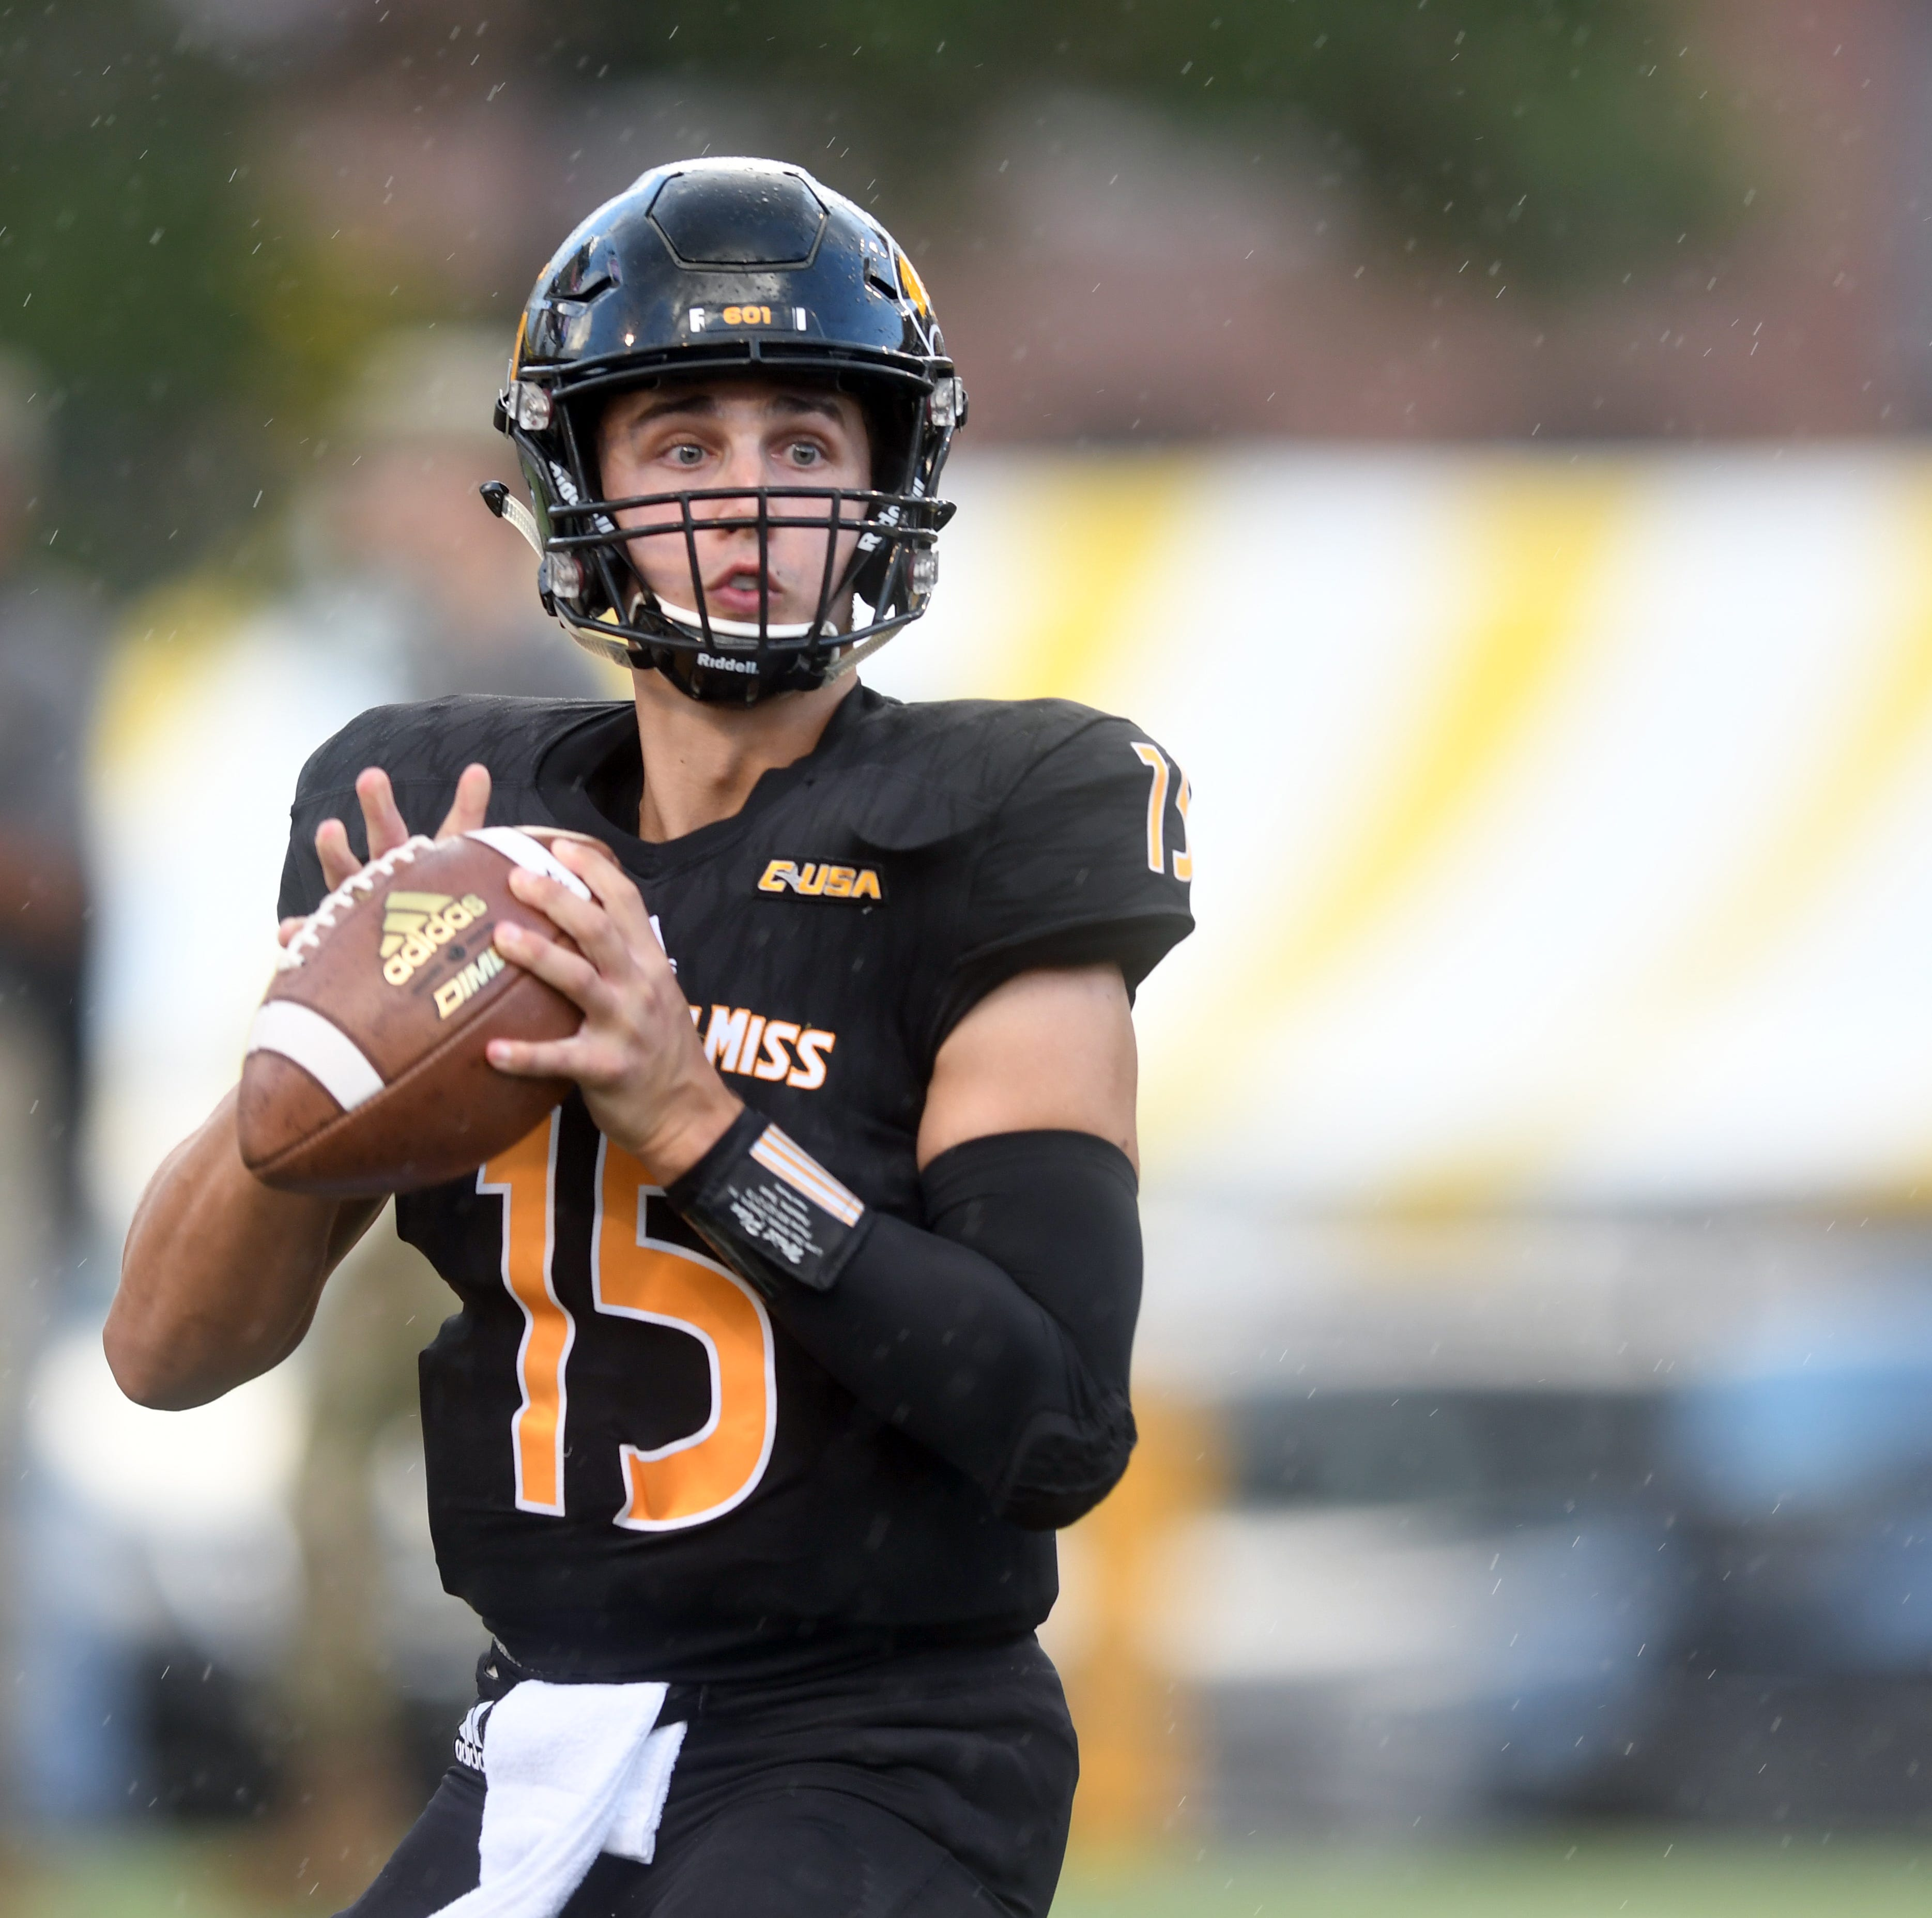 Southern Miss falls to UL-Monroe 21-20 after four turnovers, two missed field goals